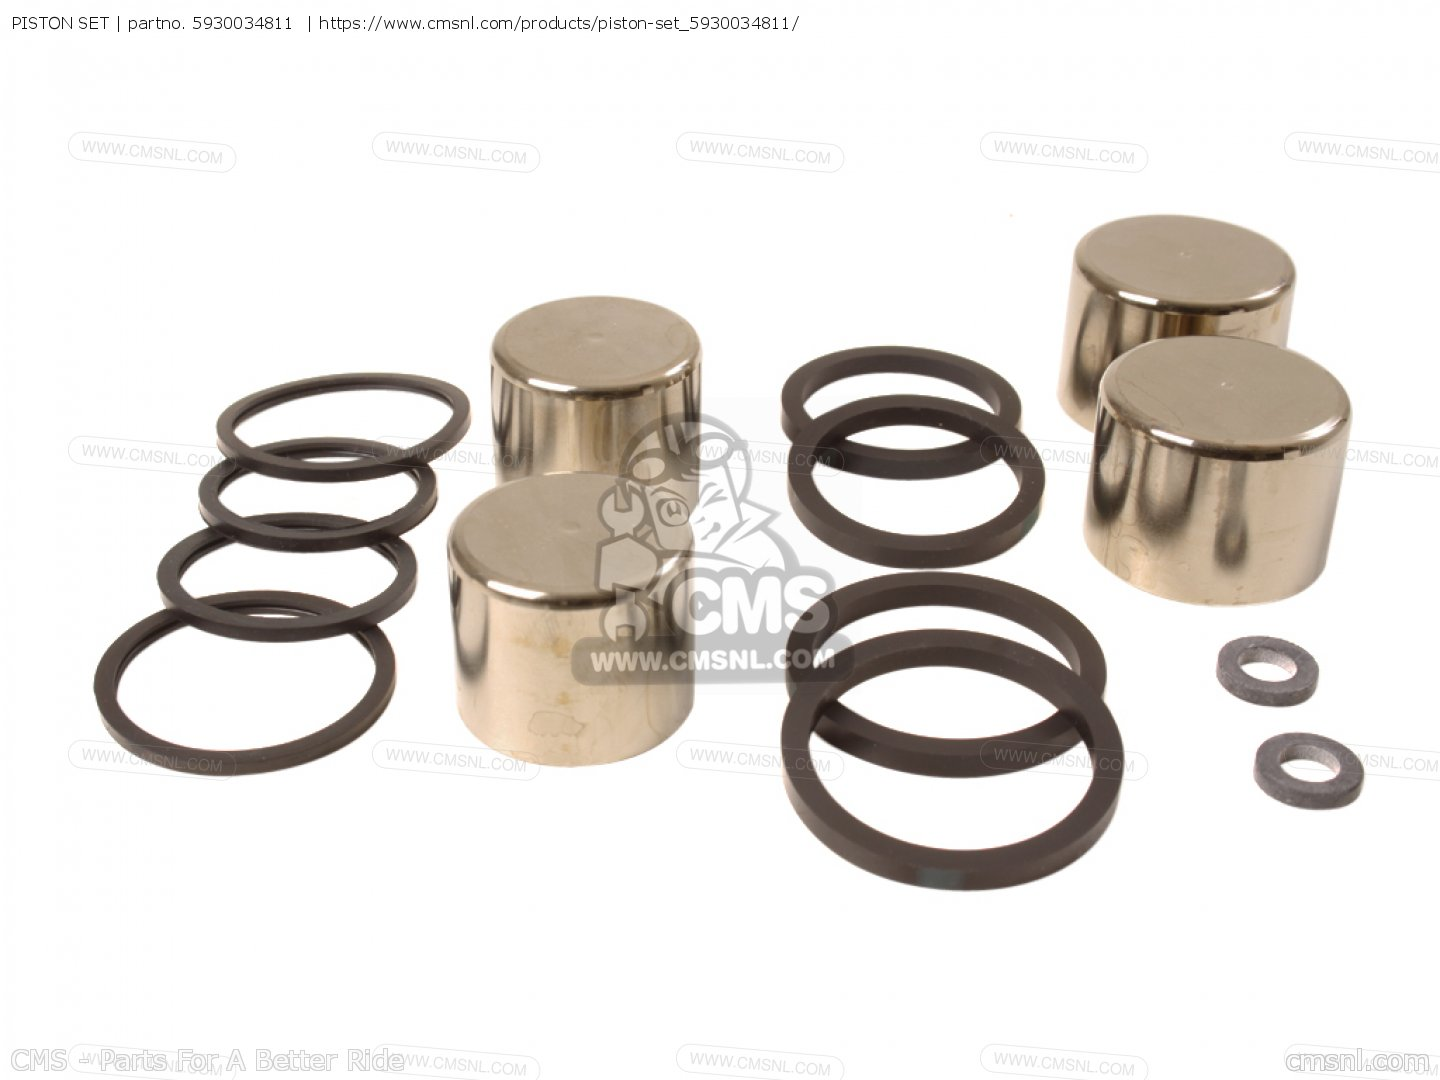 5930034811 Piston Set Suzuki Buy The 59300 34811 At Cmsnl 2009 Gsf1250sa Starter Motor Components And Parts Diagram Photo